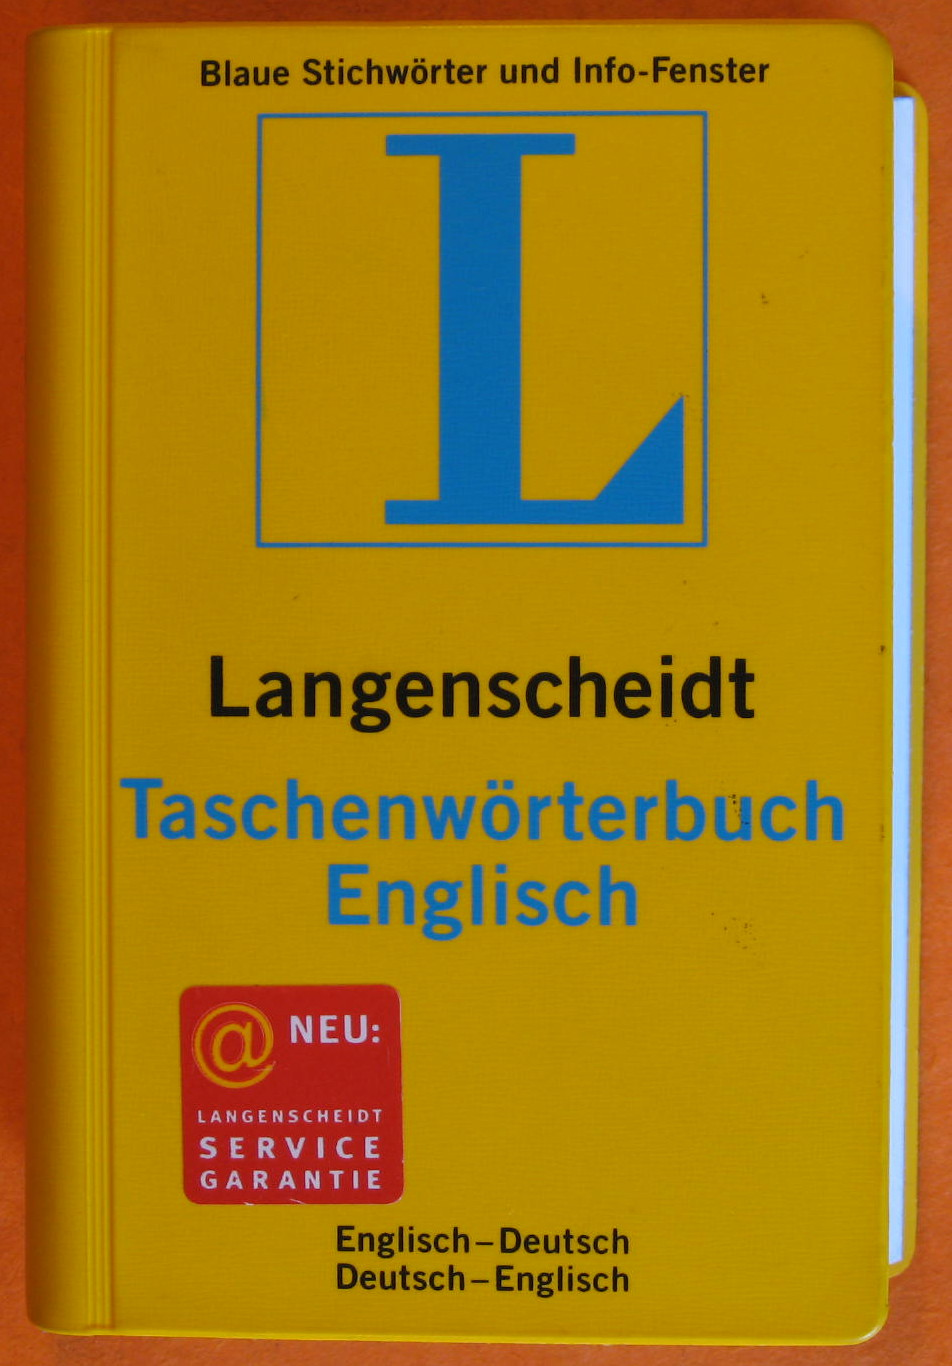 Image for Englisch-Deutsch / Deutsch-Englisch. Taschenwörterbuch. Langenscheidt. Neues Cover. English - Dutch, Dutch - English Dictionary